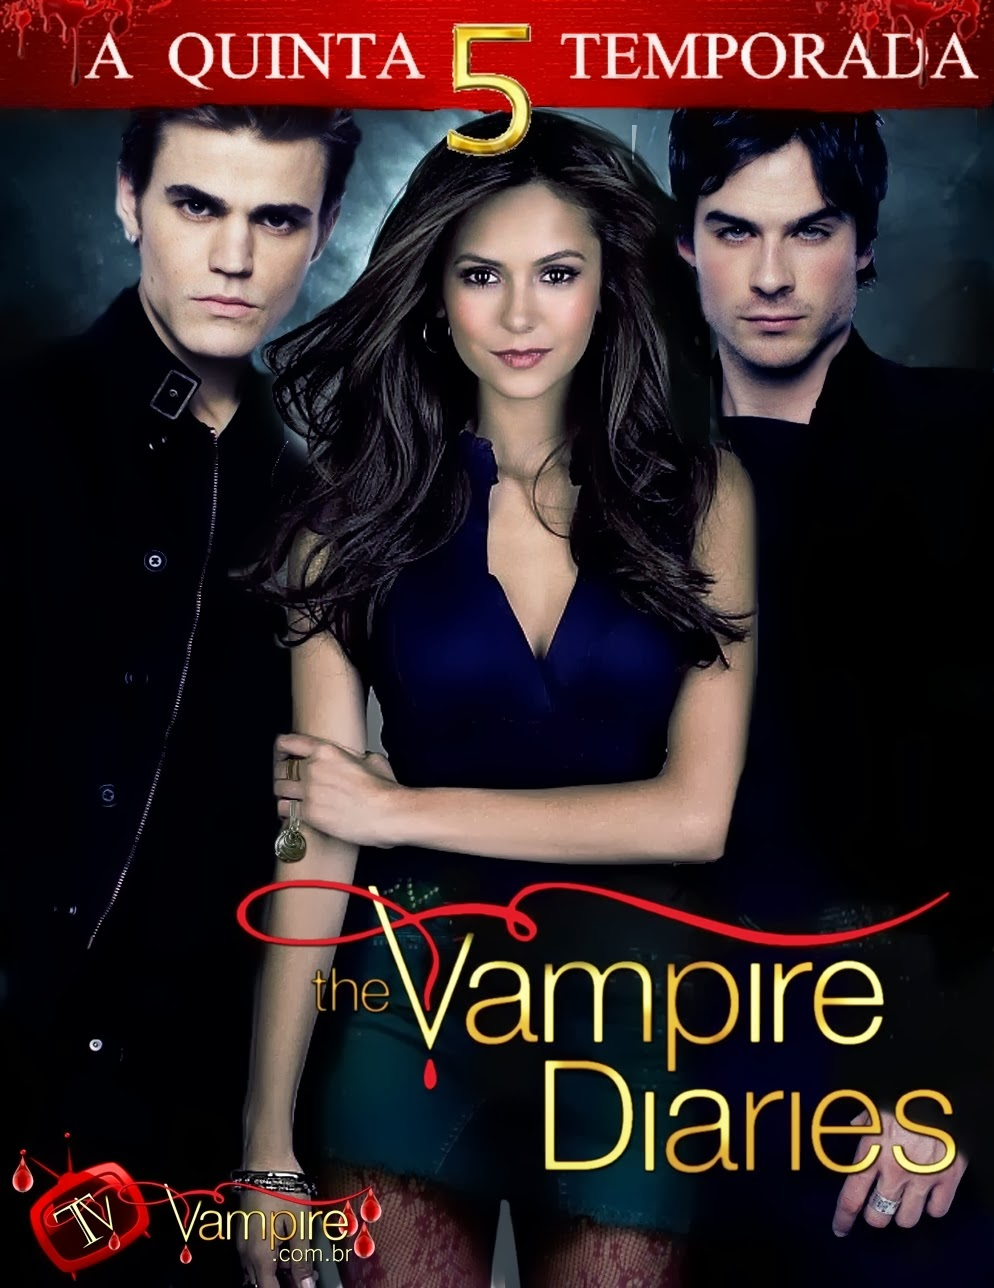 The Vampire Diaries: 5ª Temporada Completa – Legendado